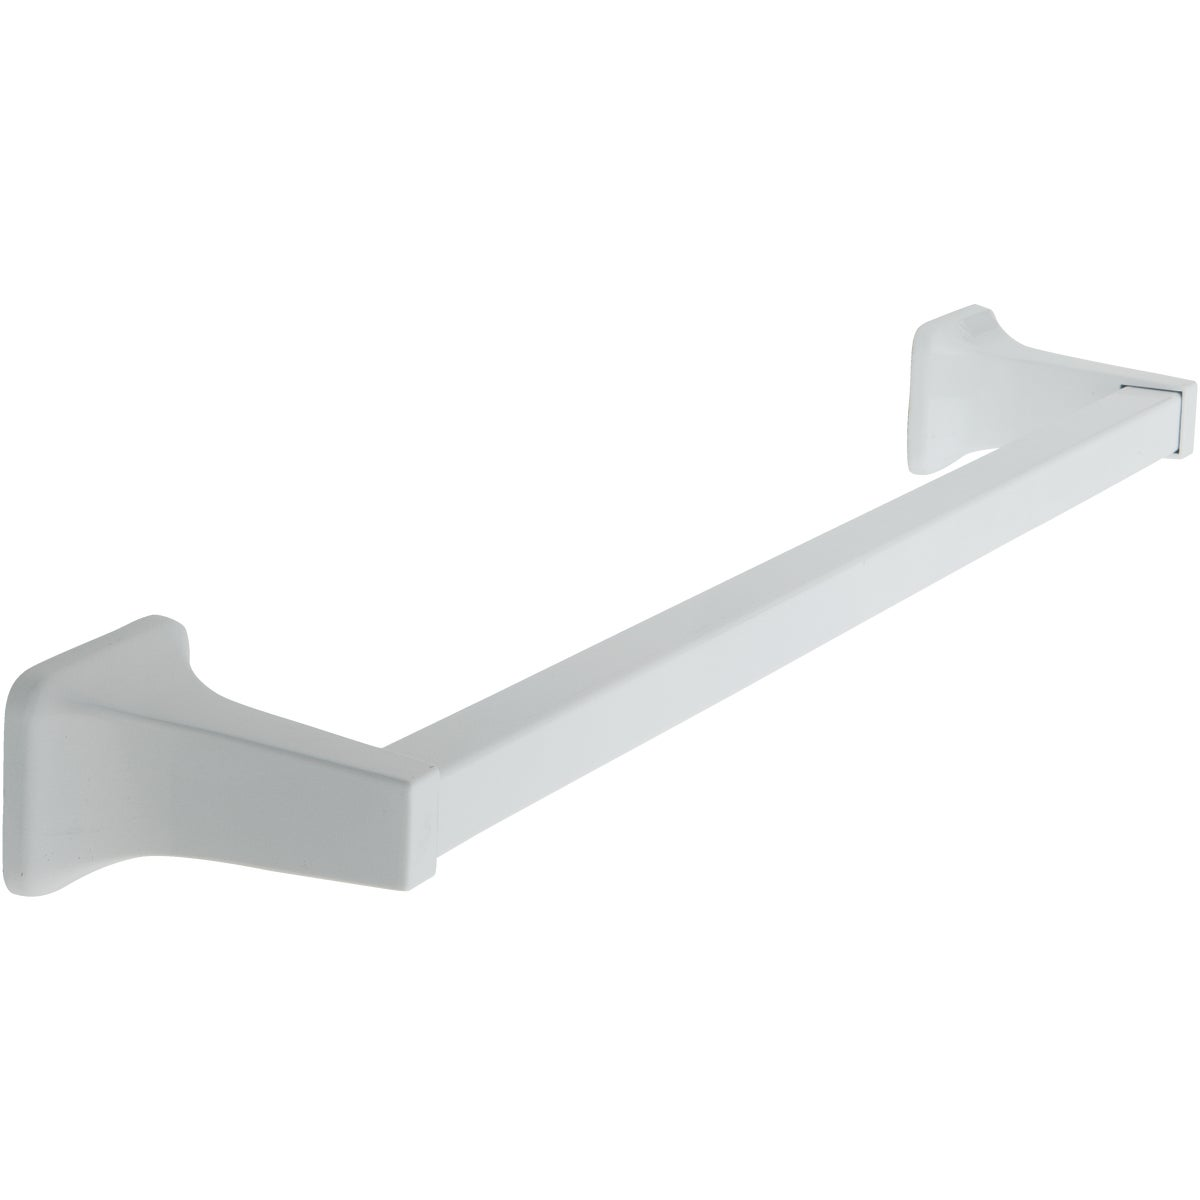 "18"" WHITE TOWEL BAR - 409640 by Do it Best"